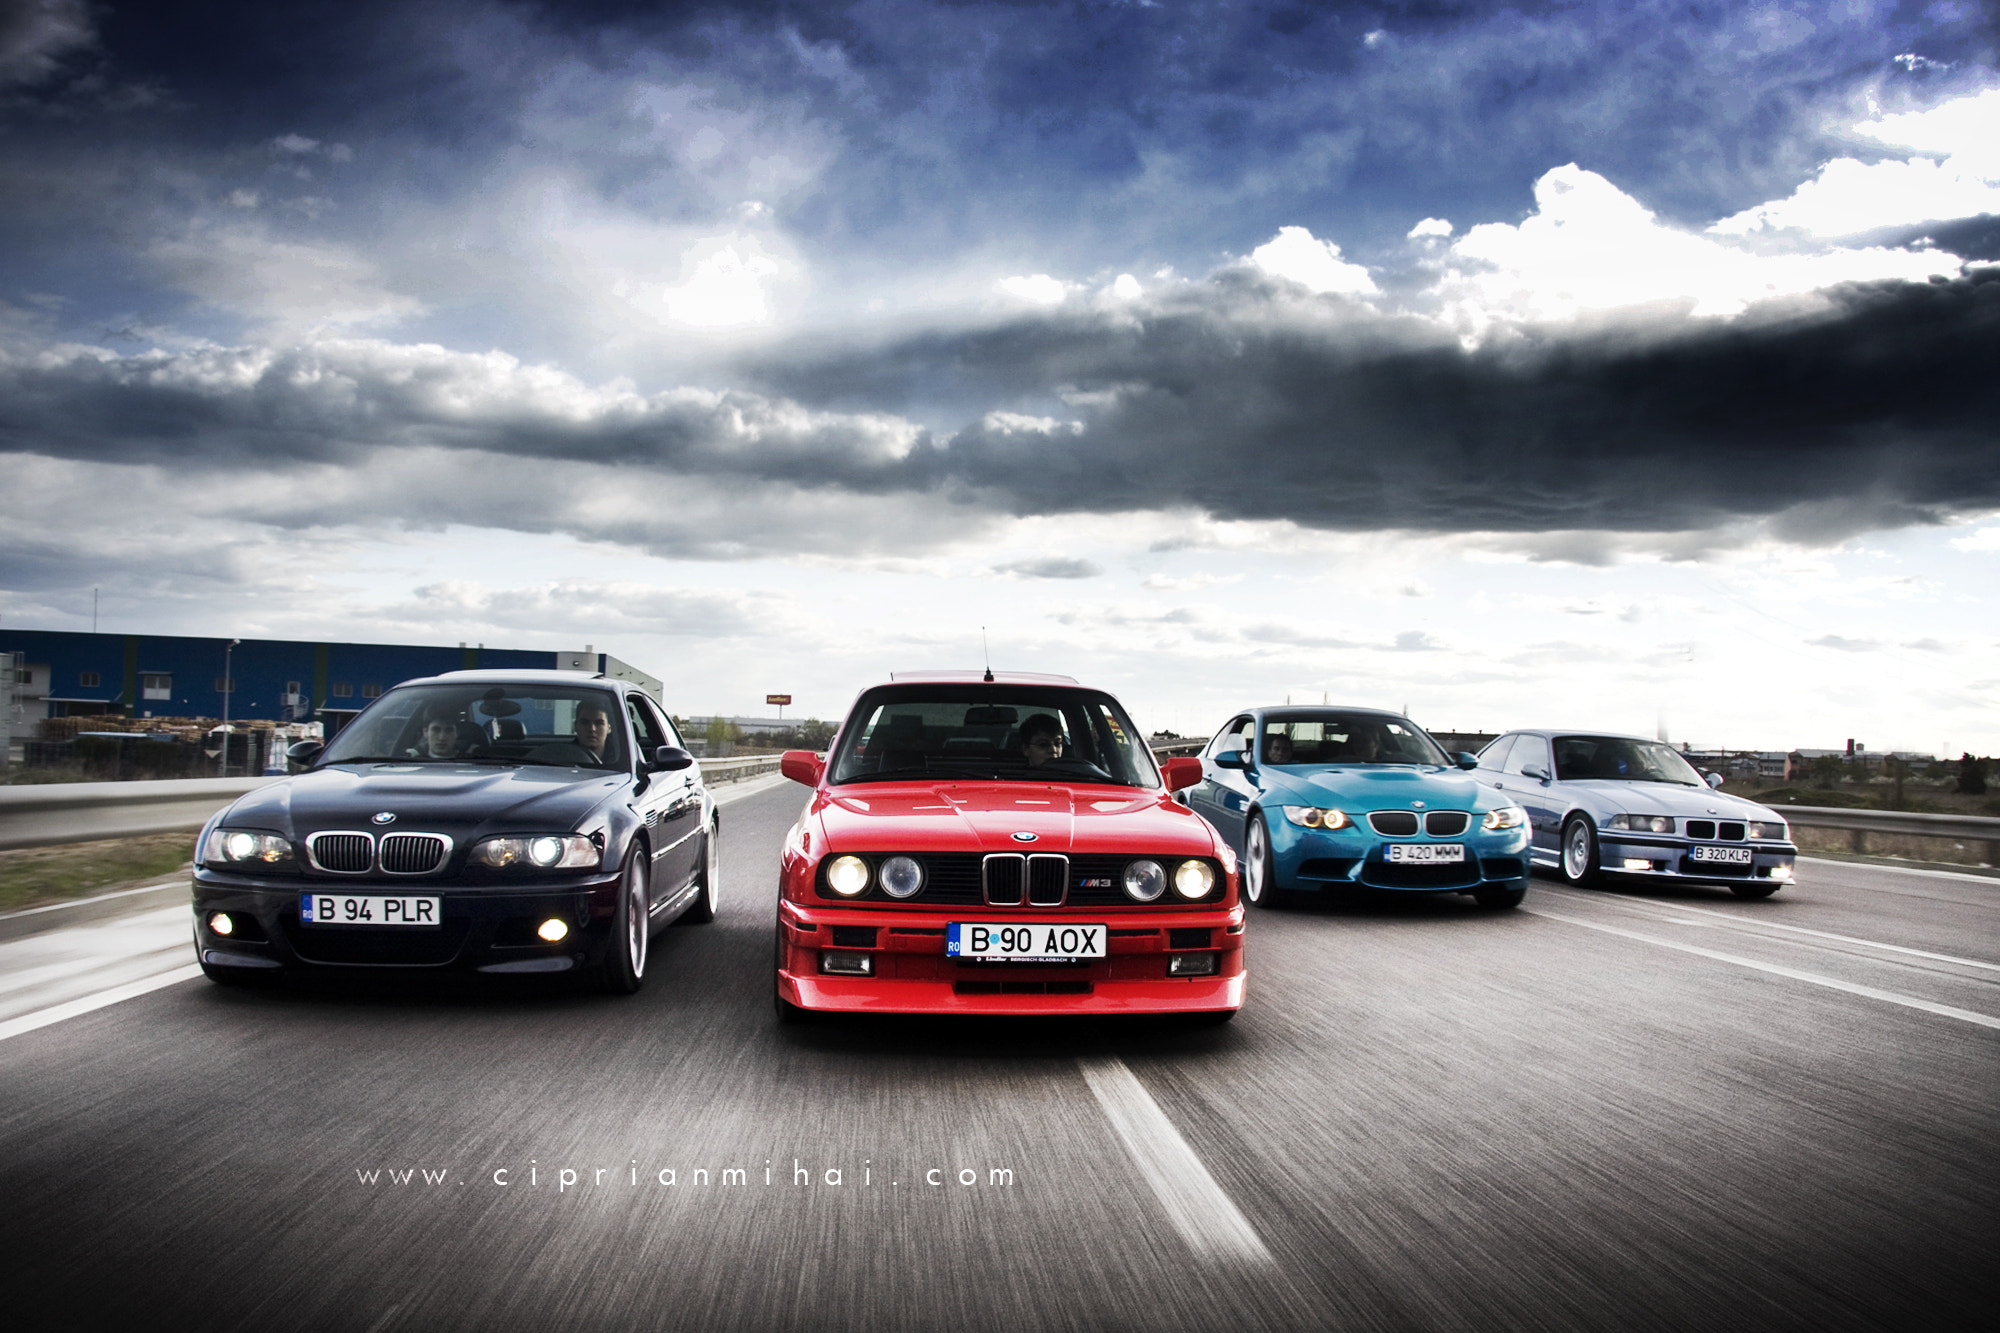 Photograph BMW M3 Family from 86 to 2011 by Ciprian Mihai on 500px